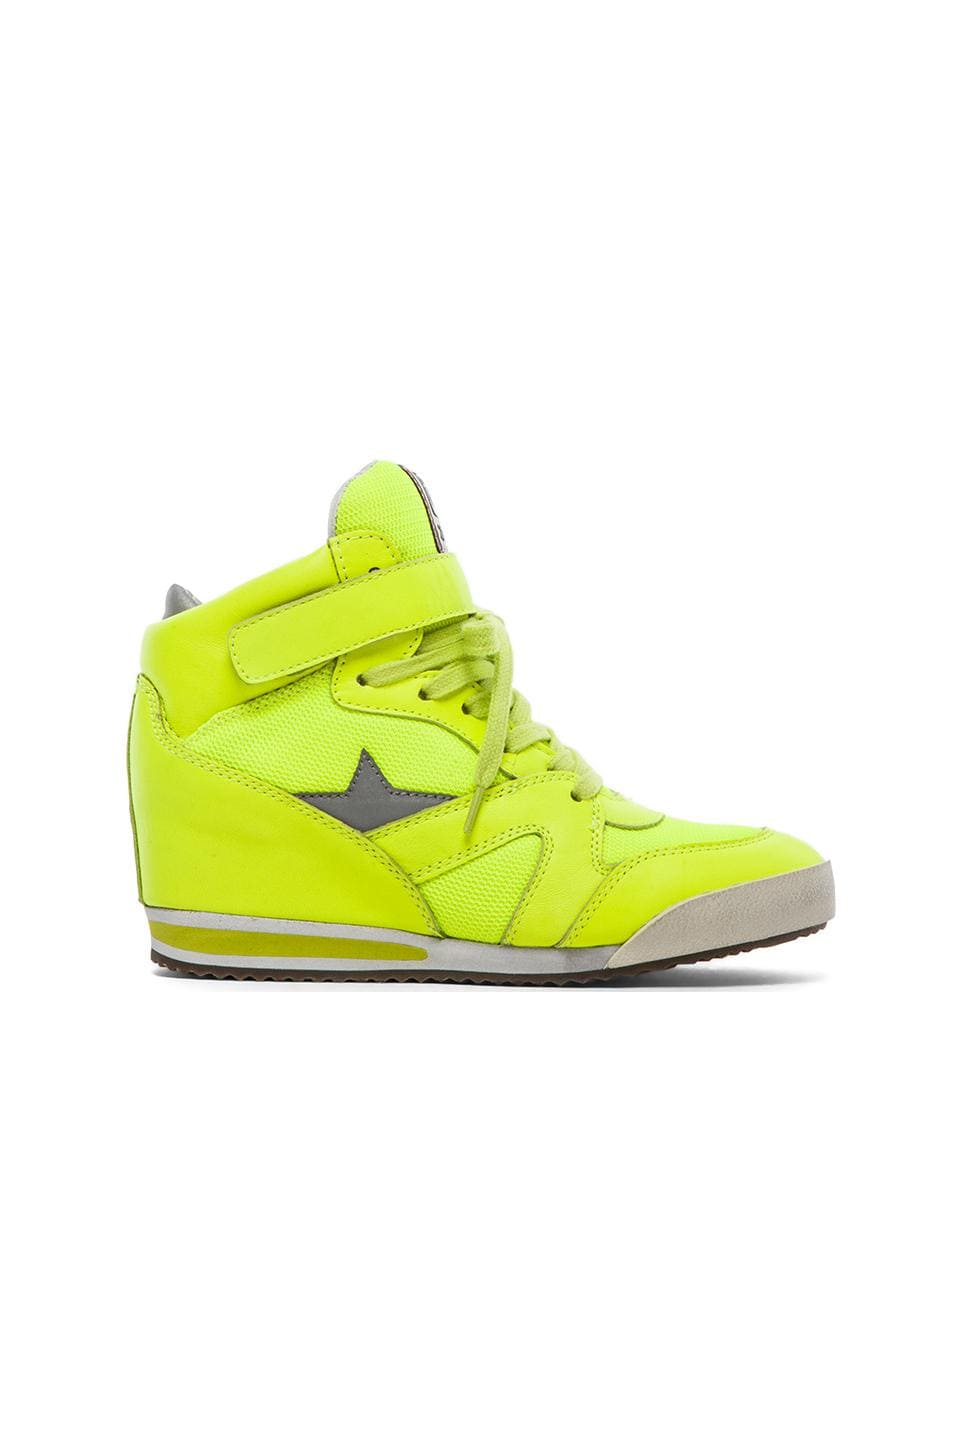 Ash Jazz Bis Sneaker in Fluo Yellow Multi